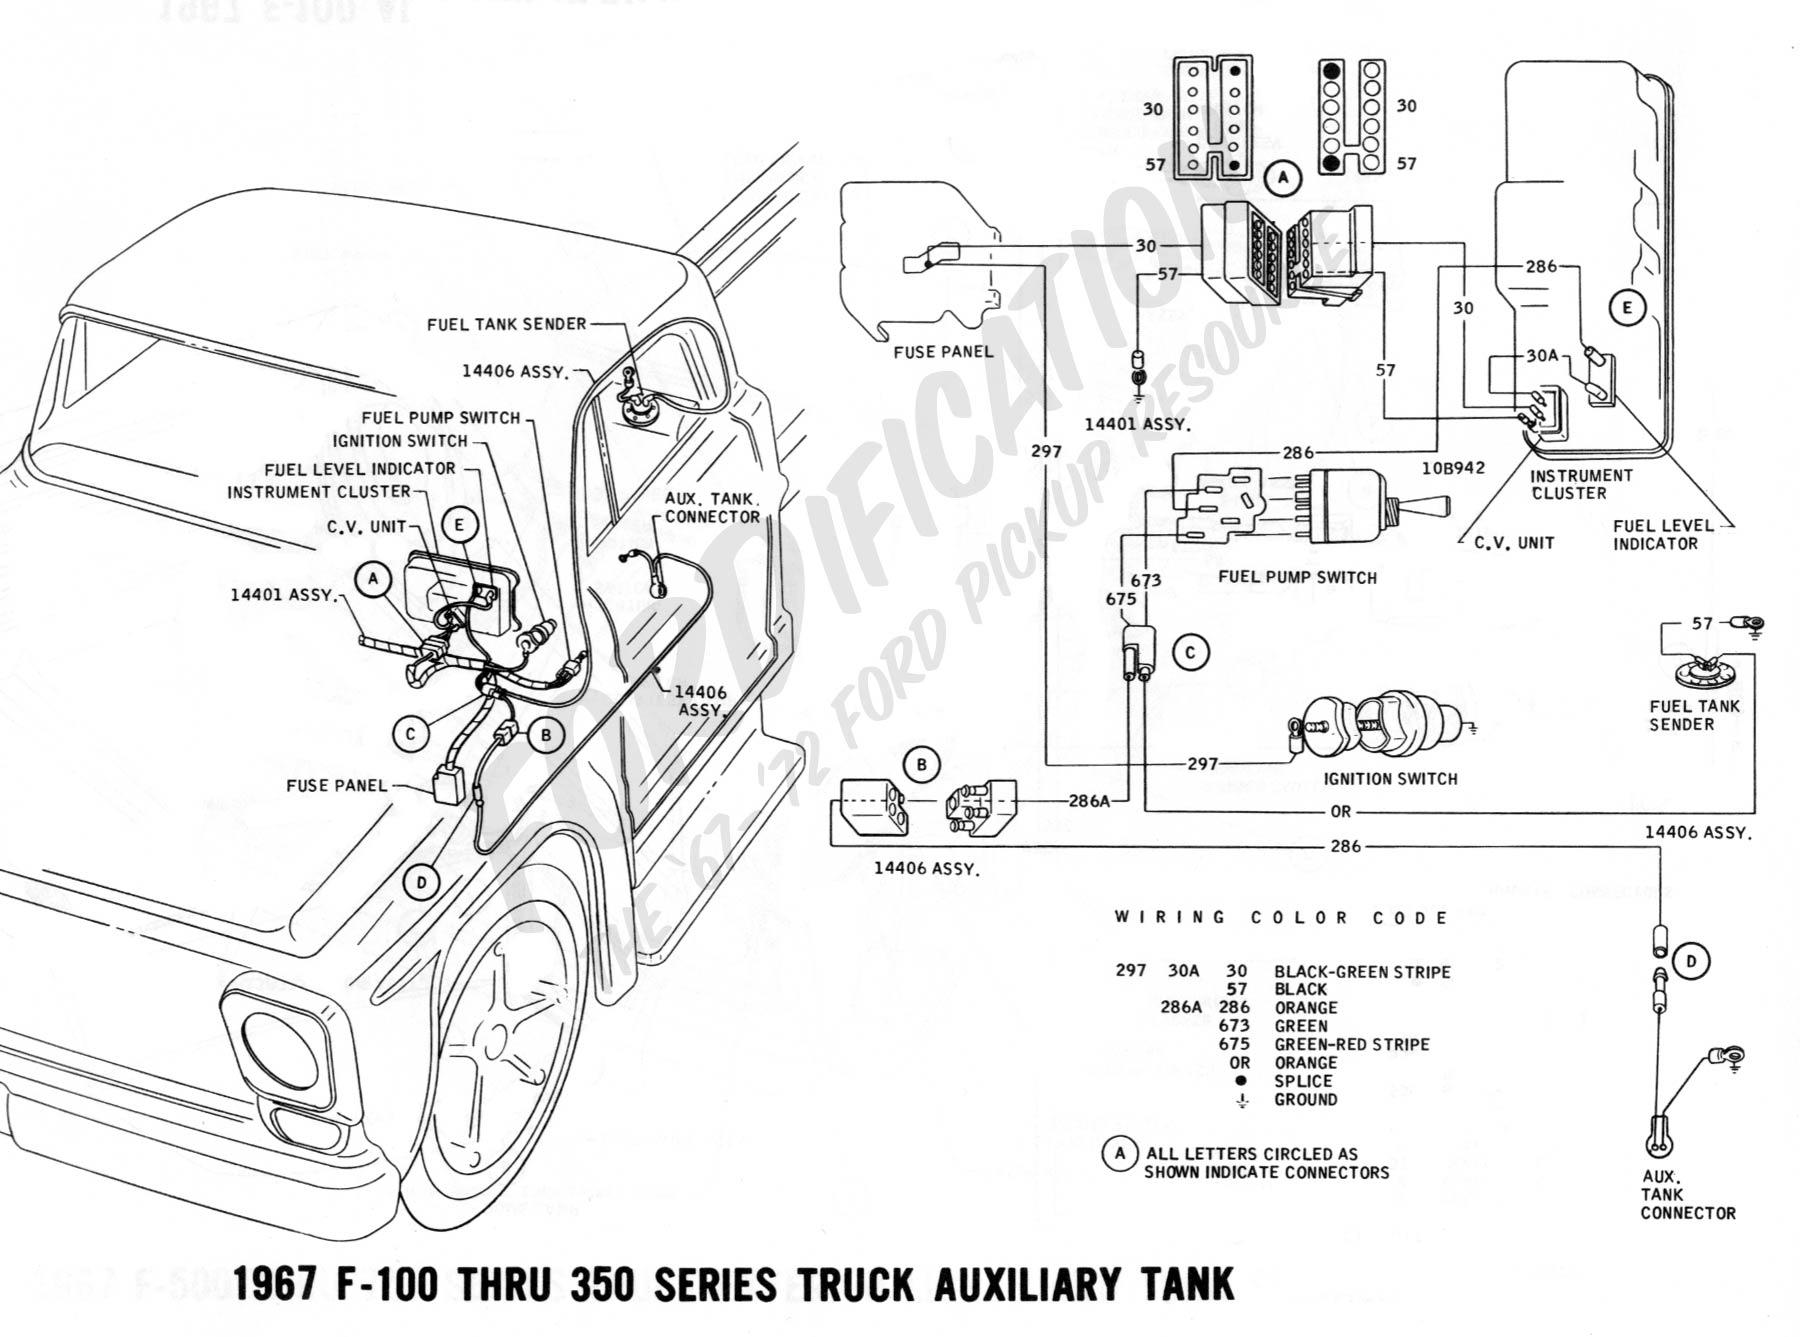 fuel pump wiring harness diagram with Schematics H on Ford 20tis 20jan 202004 also Troubleshooting 1995 S14 Fuel Pumprelay Issues also Intermittent No Start No  munication Flashing Theft Light 2010 Ford F250 6 4 Powerstroke Diesel furthermore Wiring diagrams also Wiring.